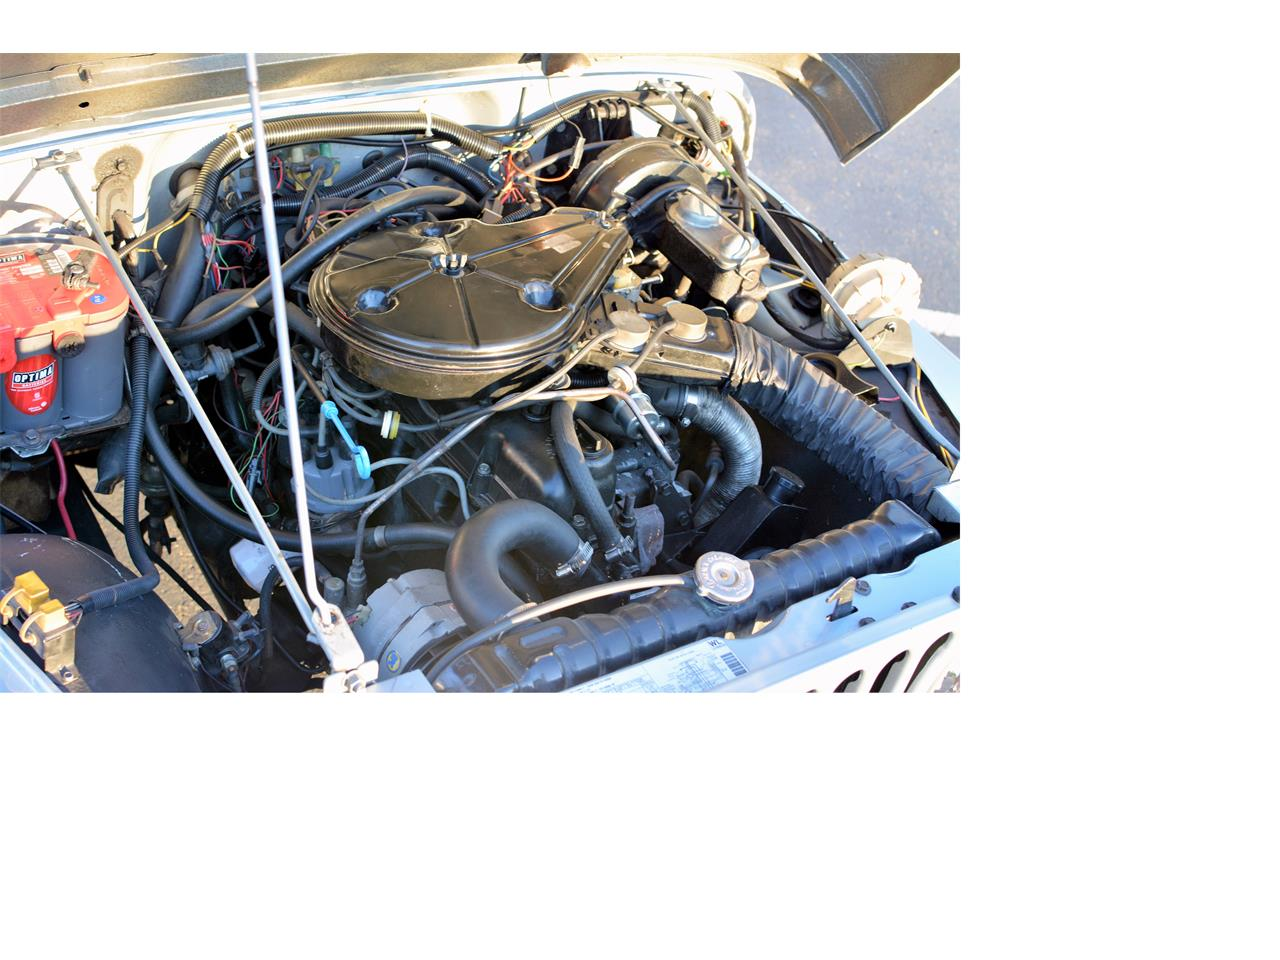 Large Picture of '83 Jeep Wrangler located in California - $17,500.00 - LHRY